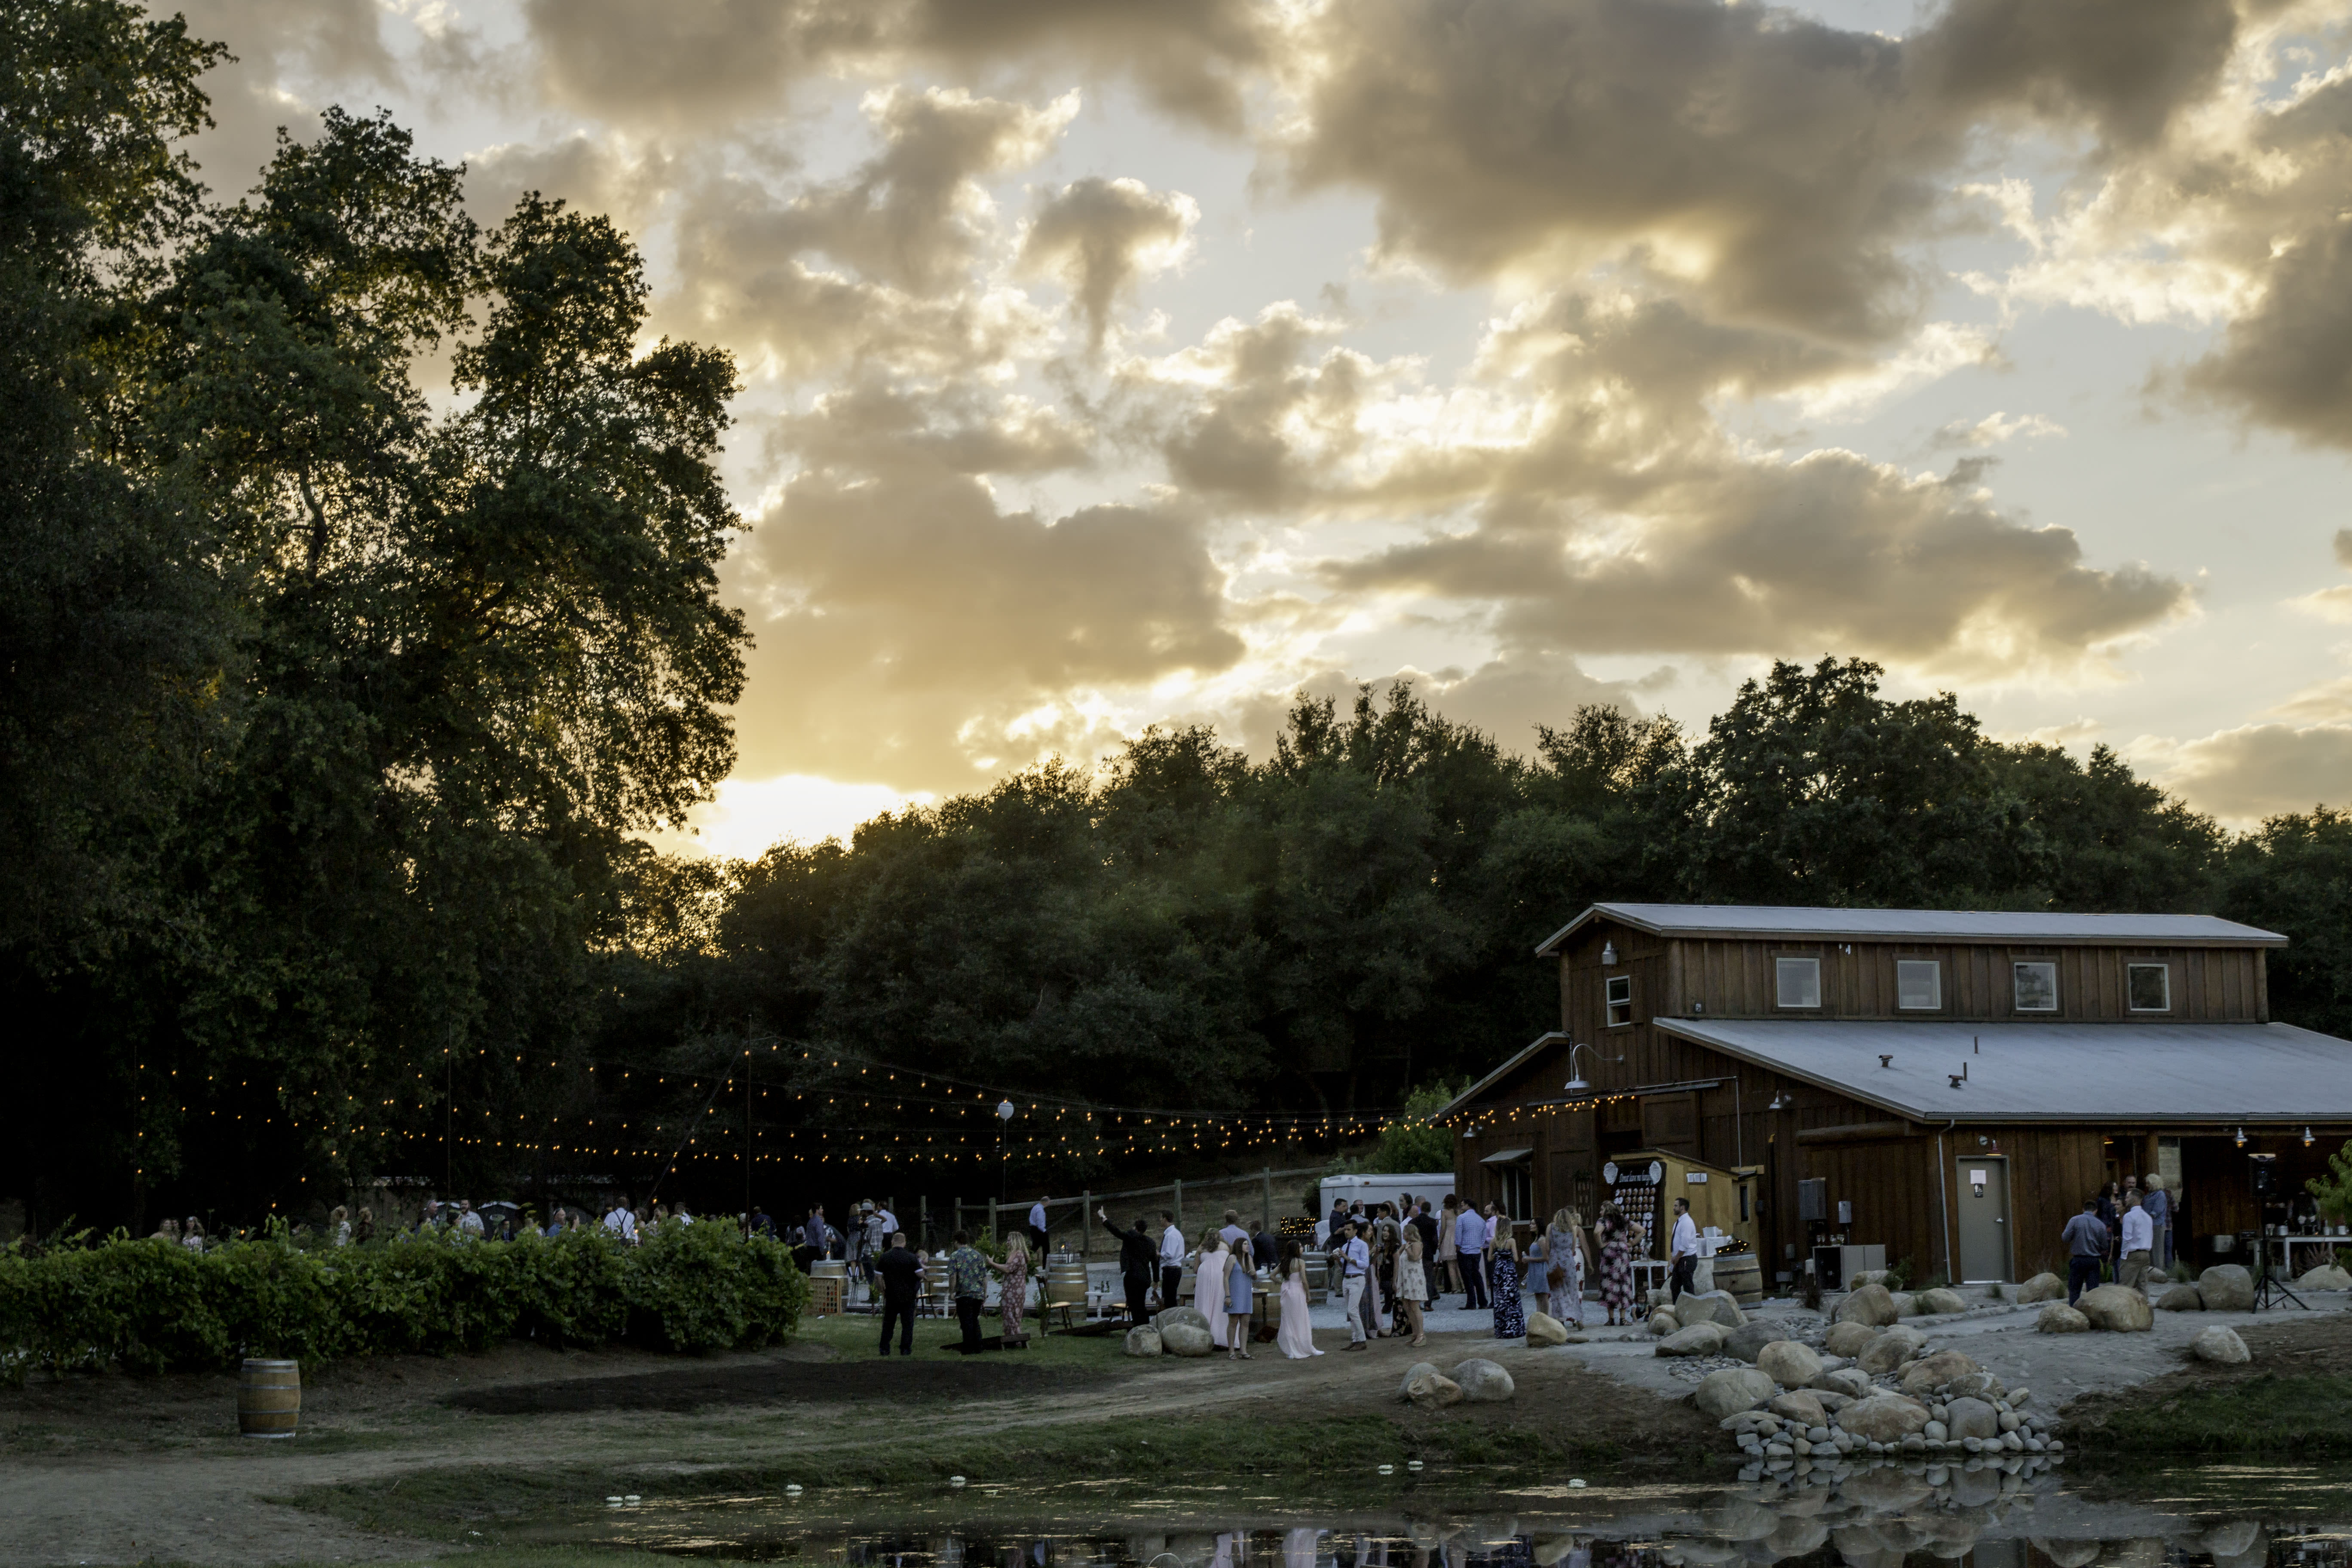 Image from far away showing an outdoor wedding reception at a barn showing how to get into wedding photography